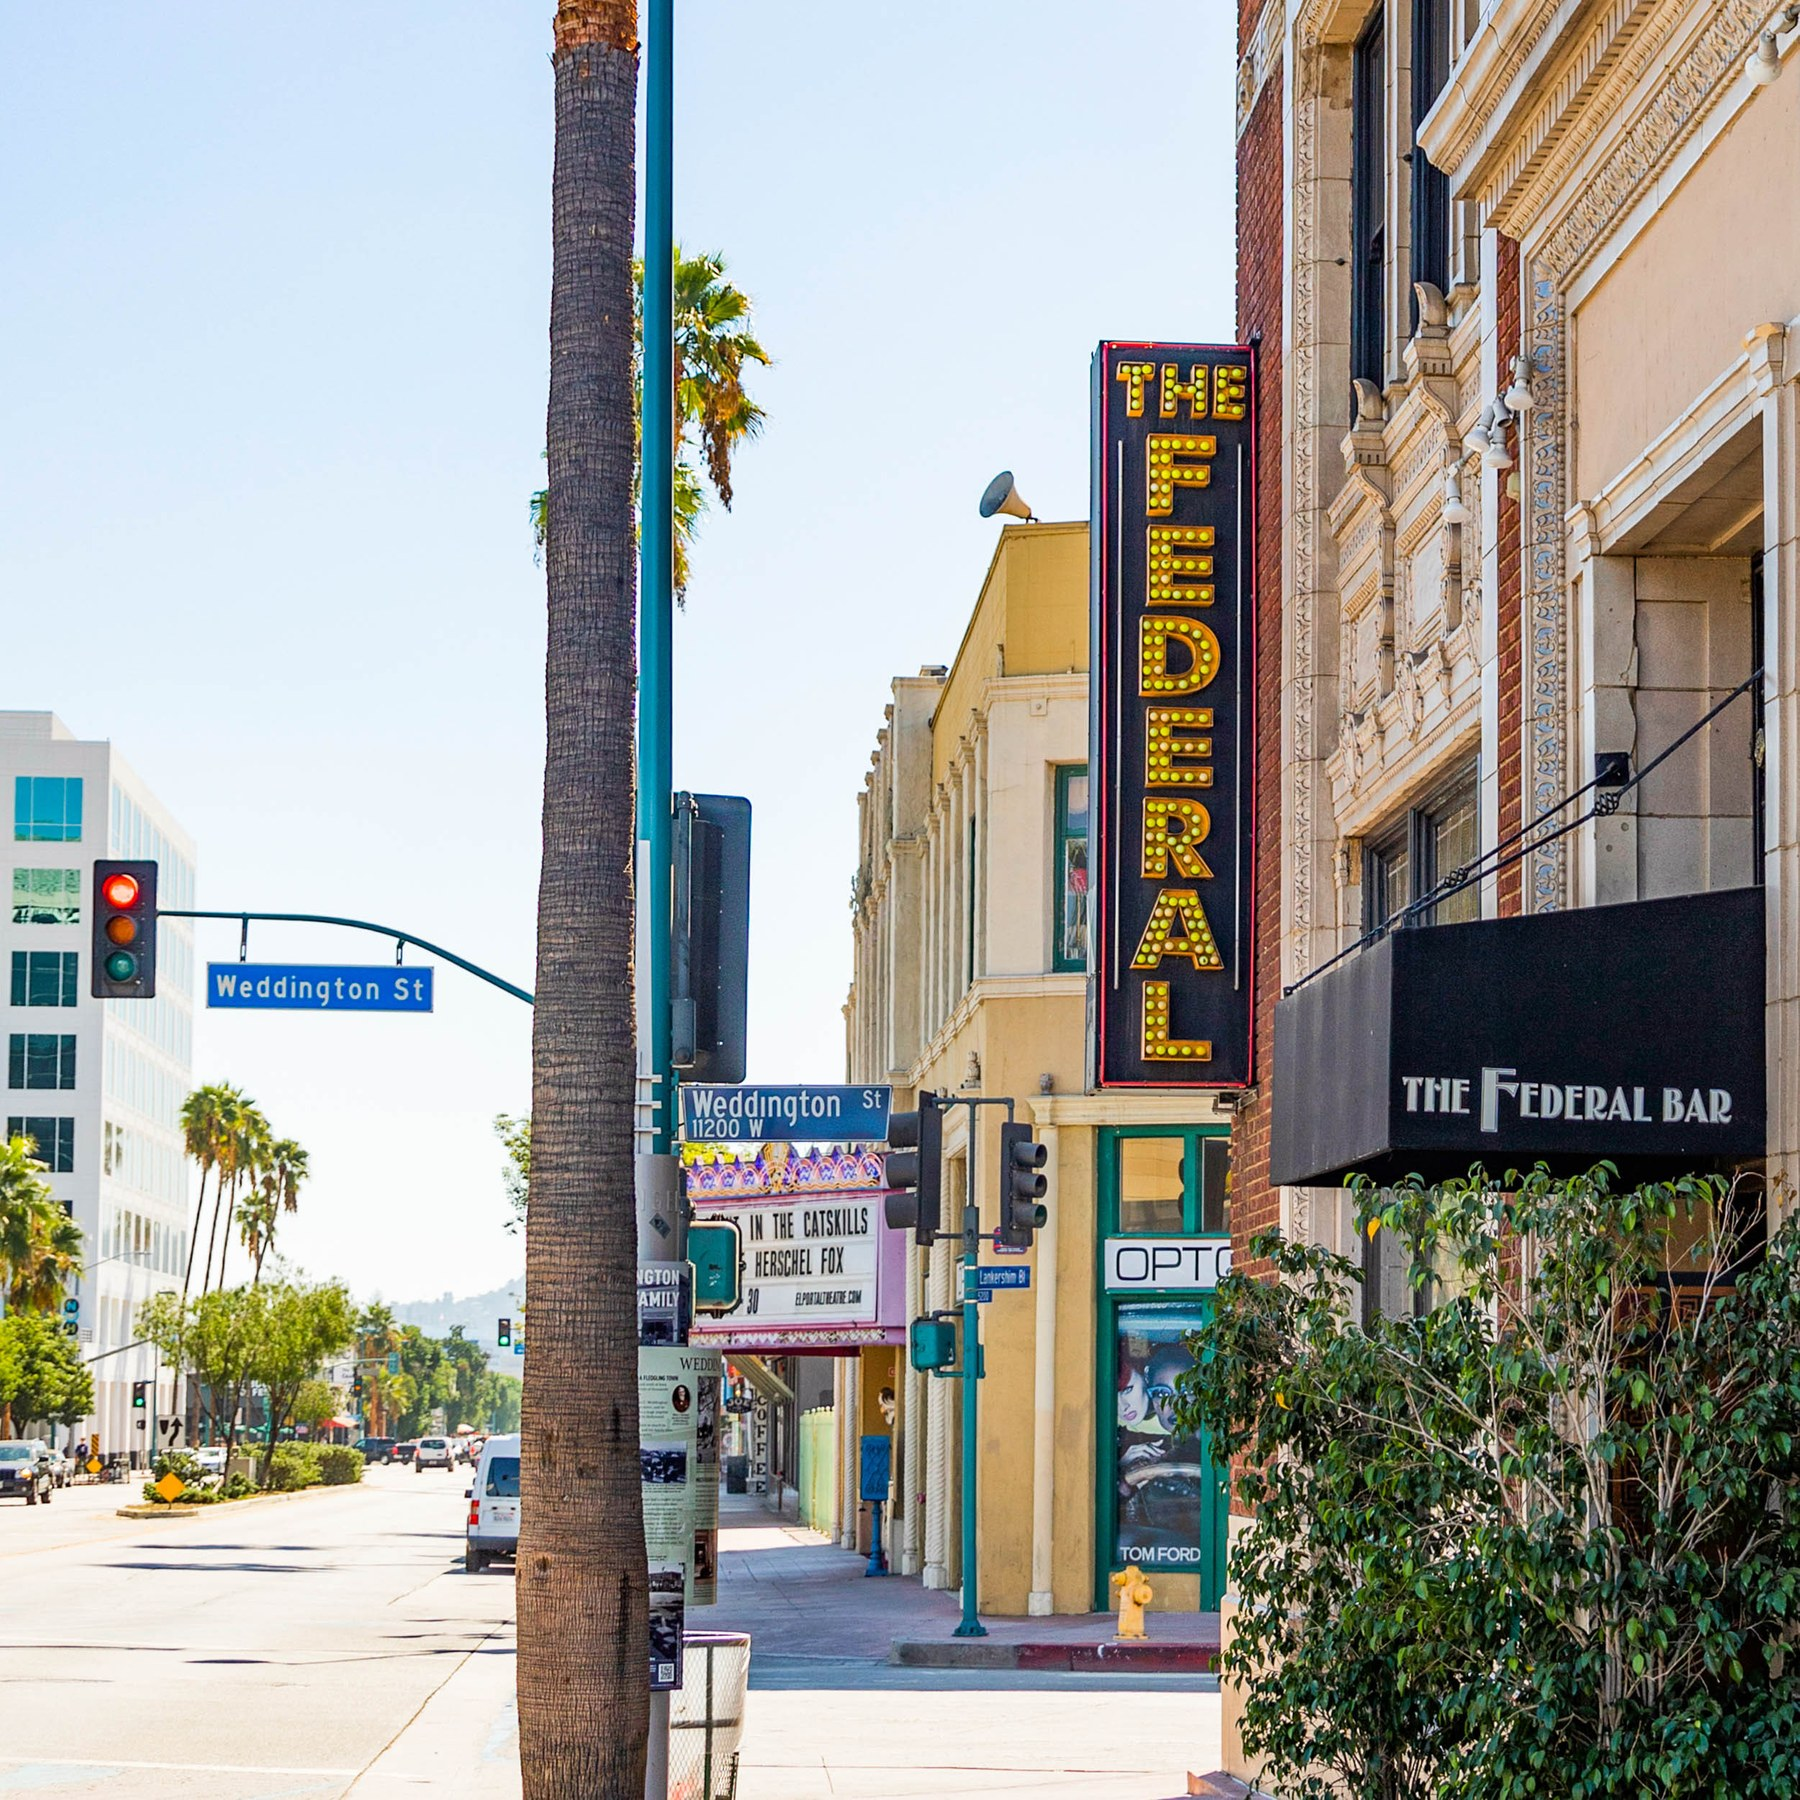 Apartments For Sale In Los Angeles Downtown: North Hollywood, Los Angeles CA - Neighborhood Guide